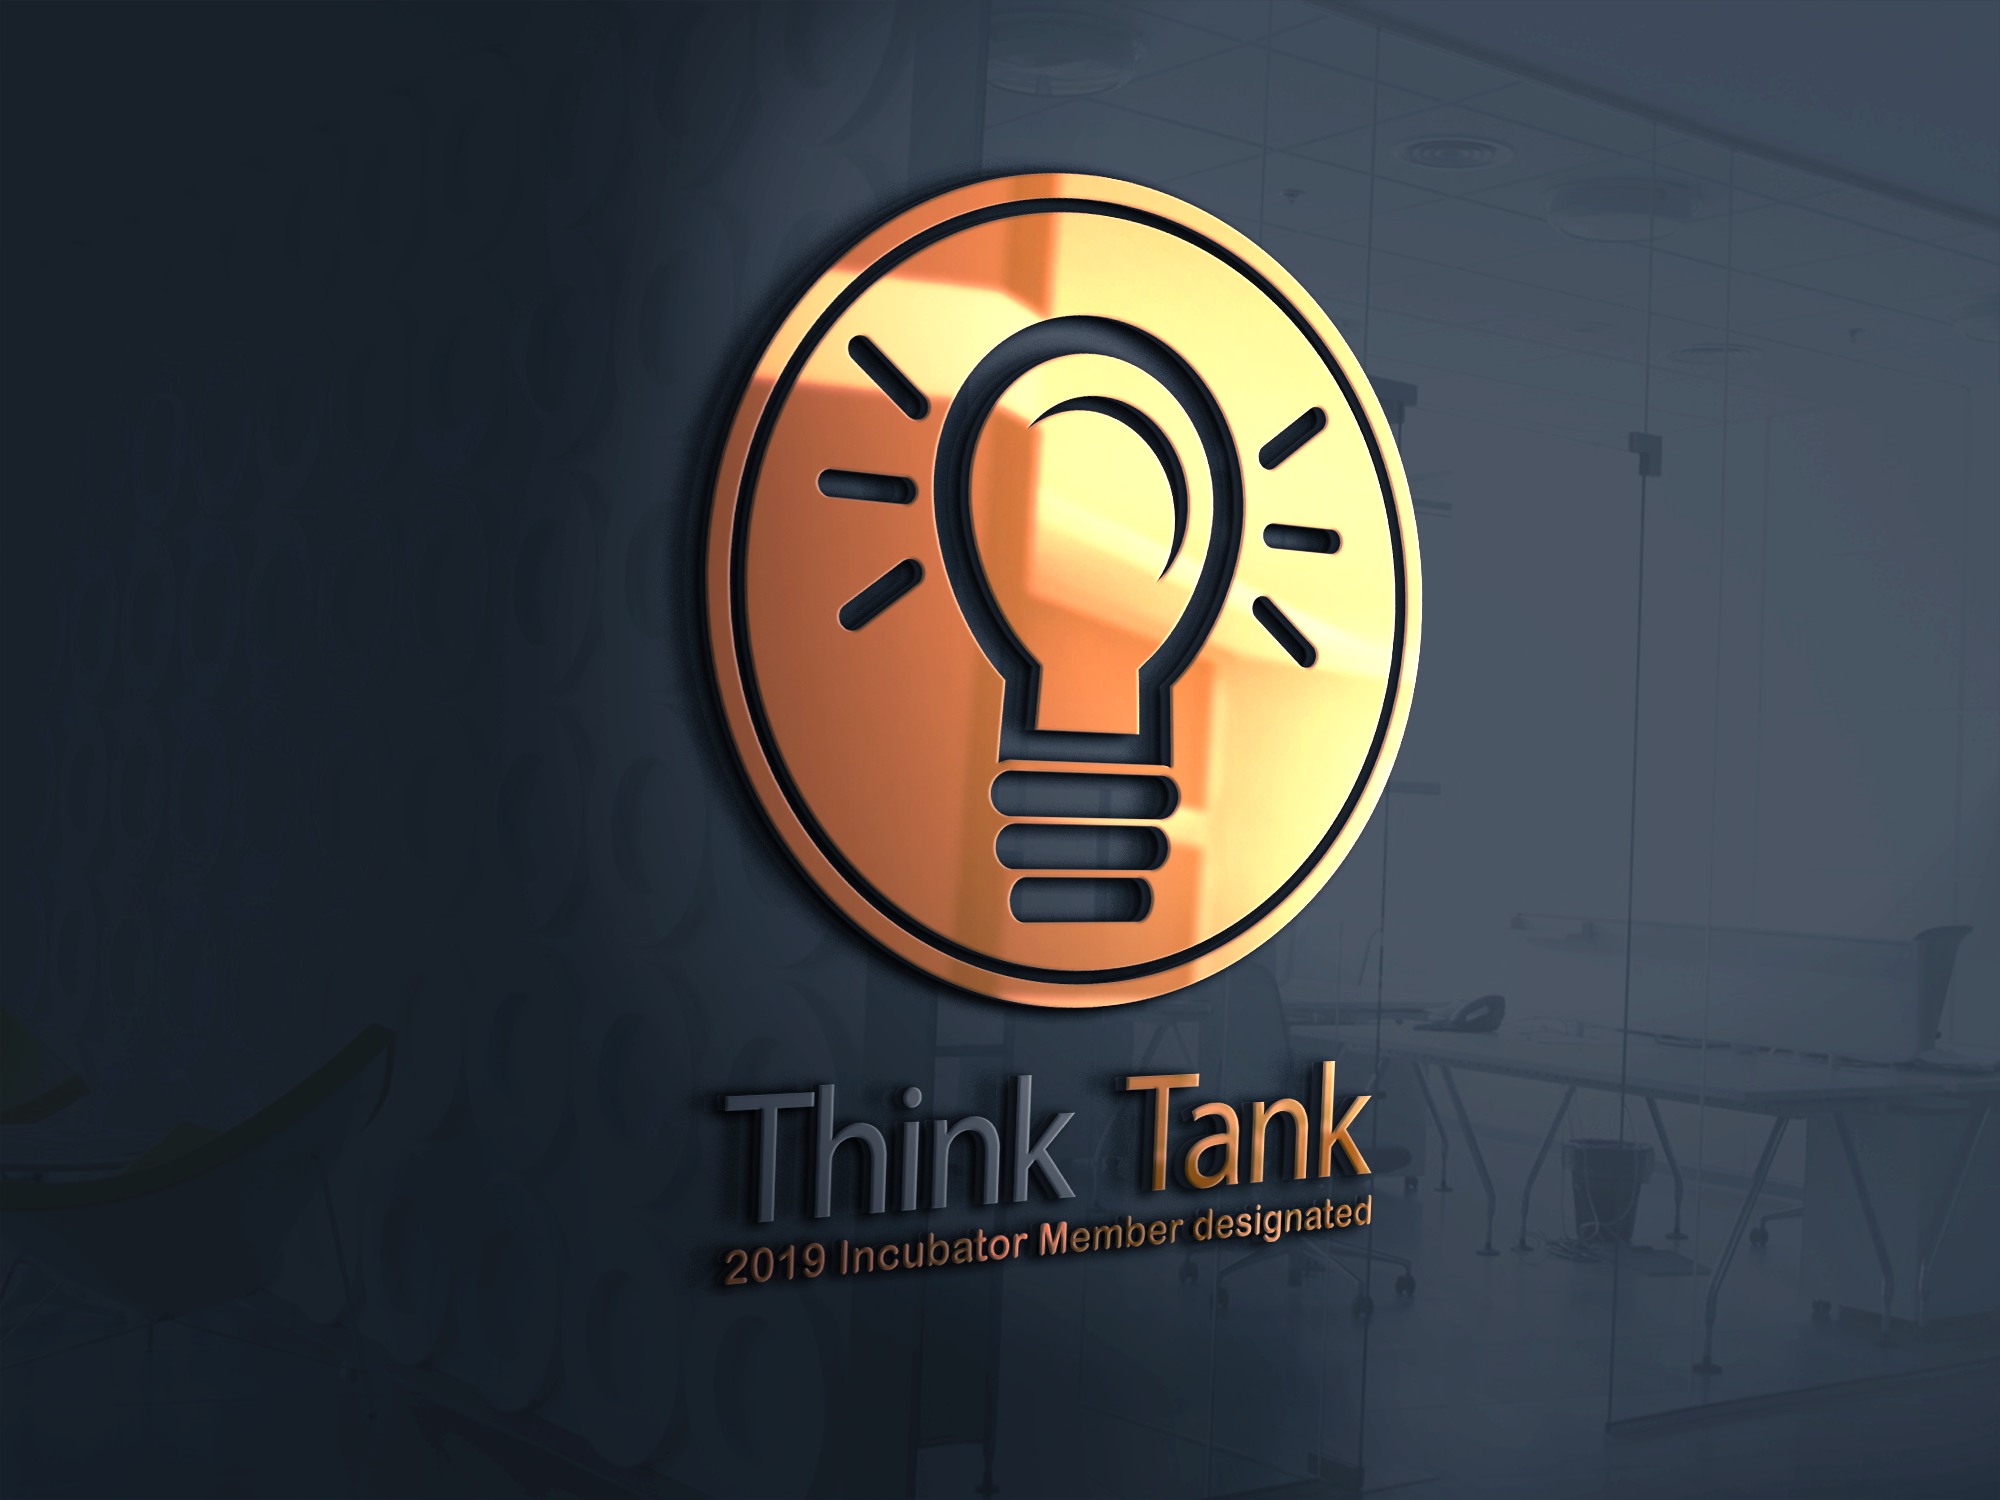 Graphic Design For Thinktank Innovation